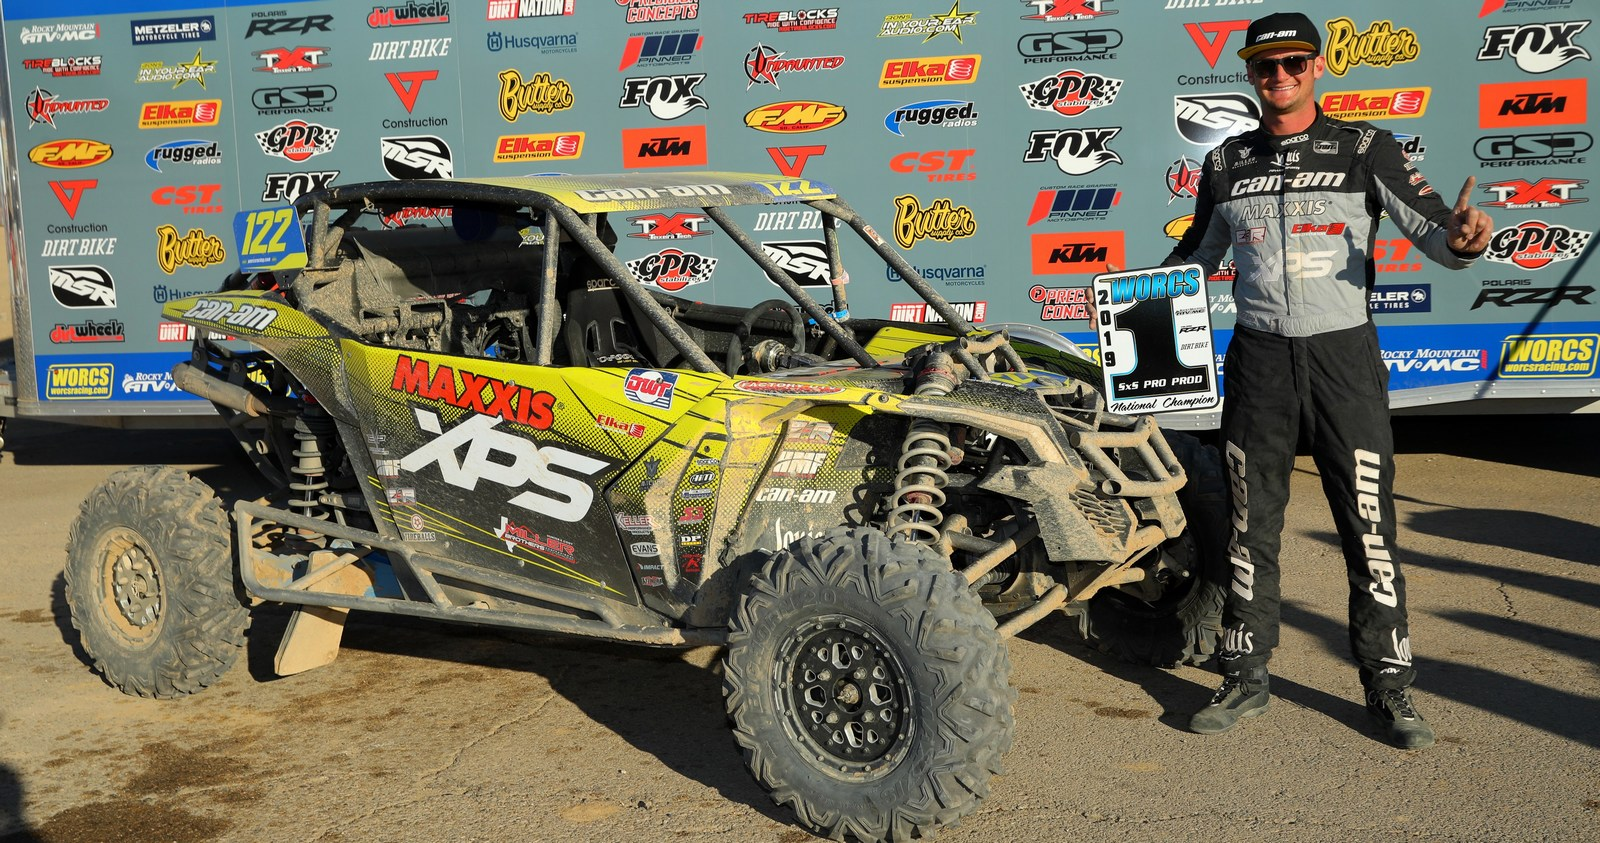 09-cody-miller-champion-sxs-pro-worcs-racing